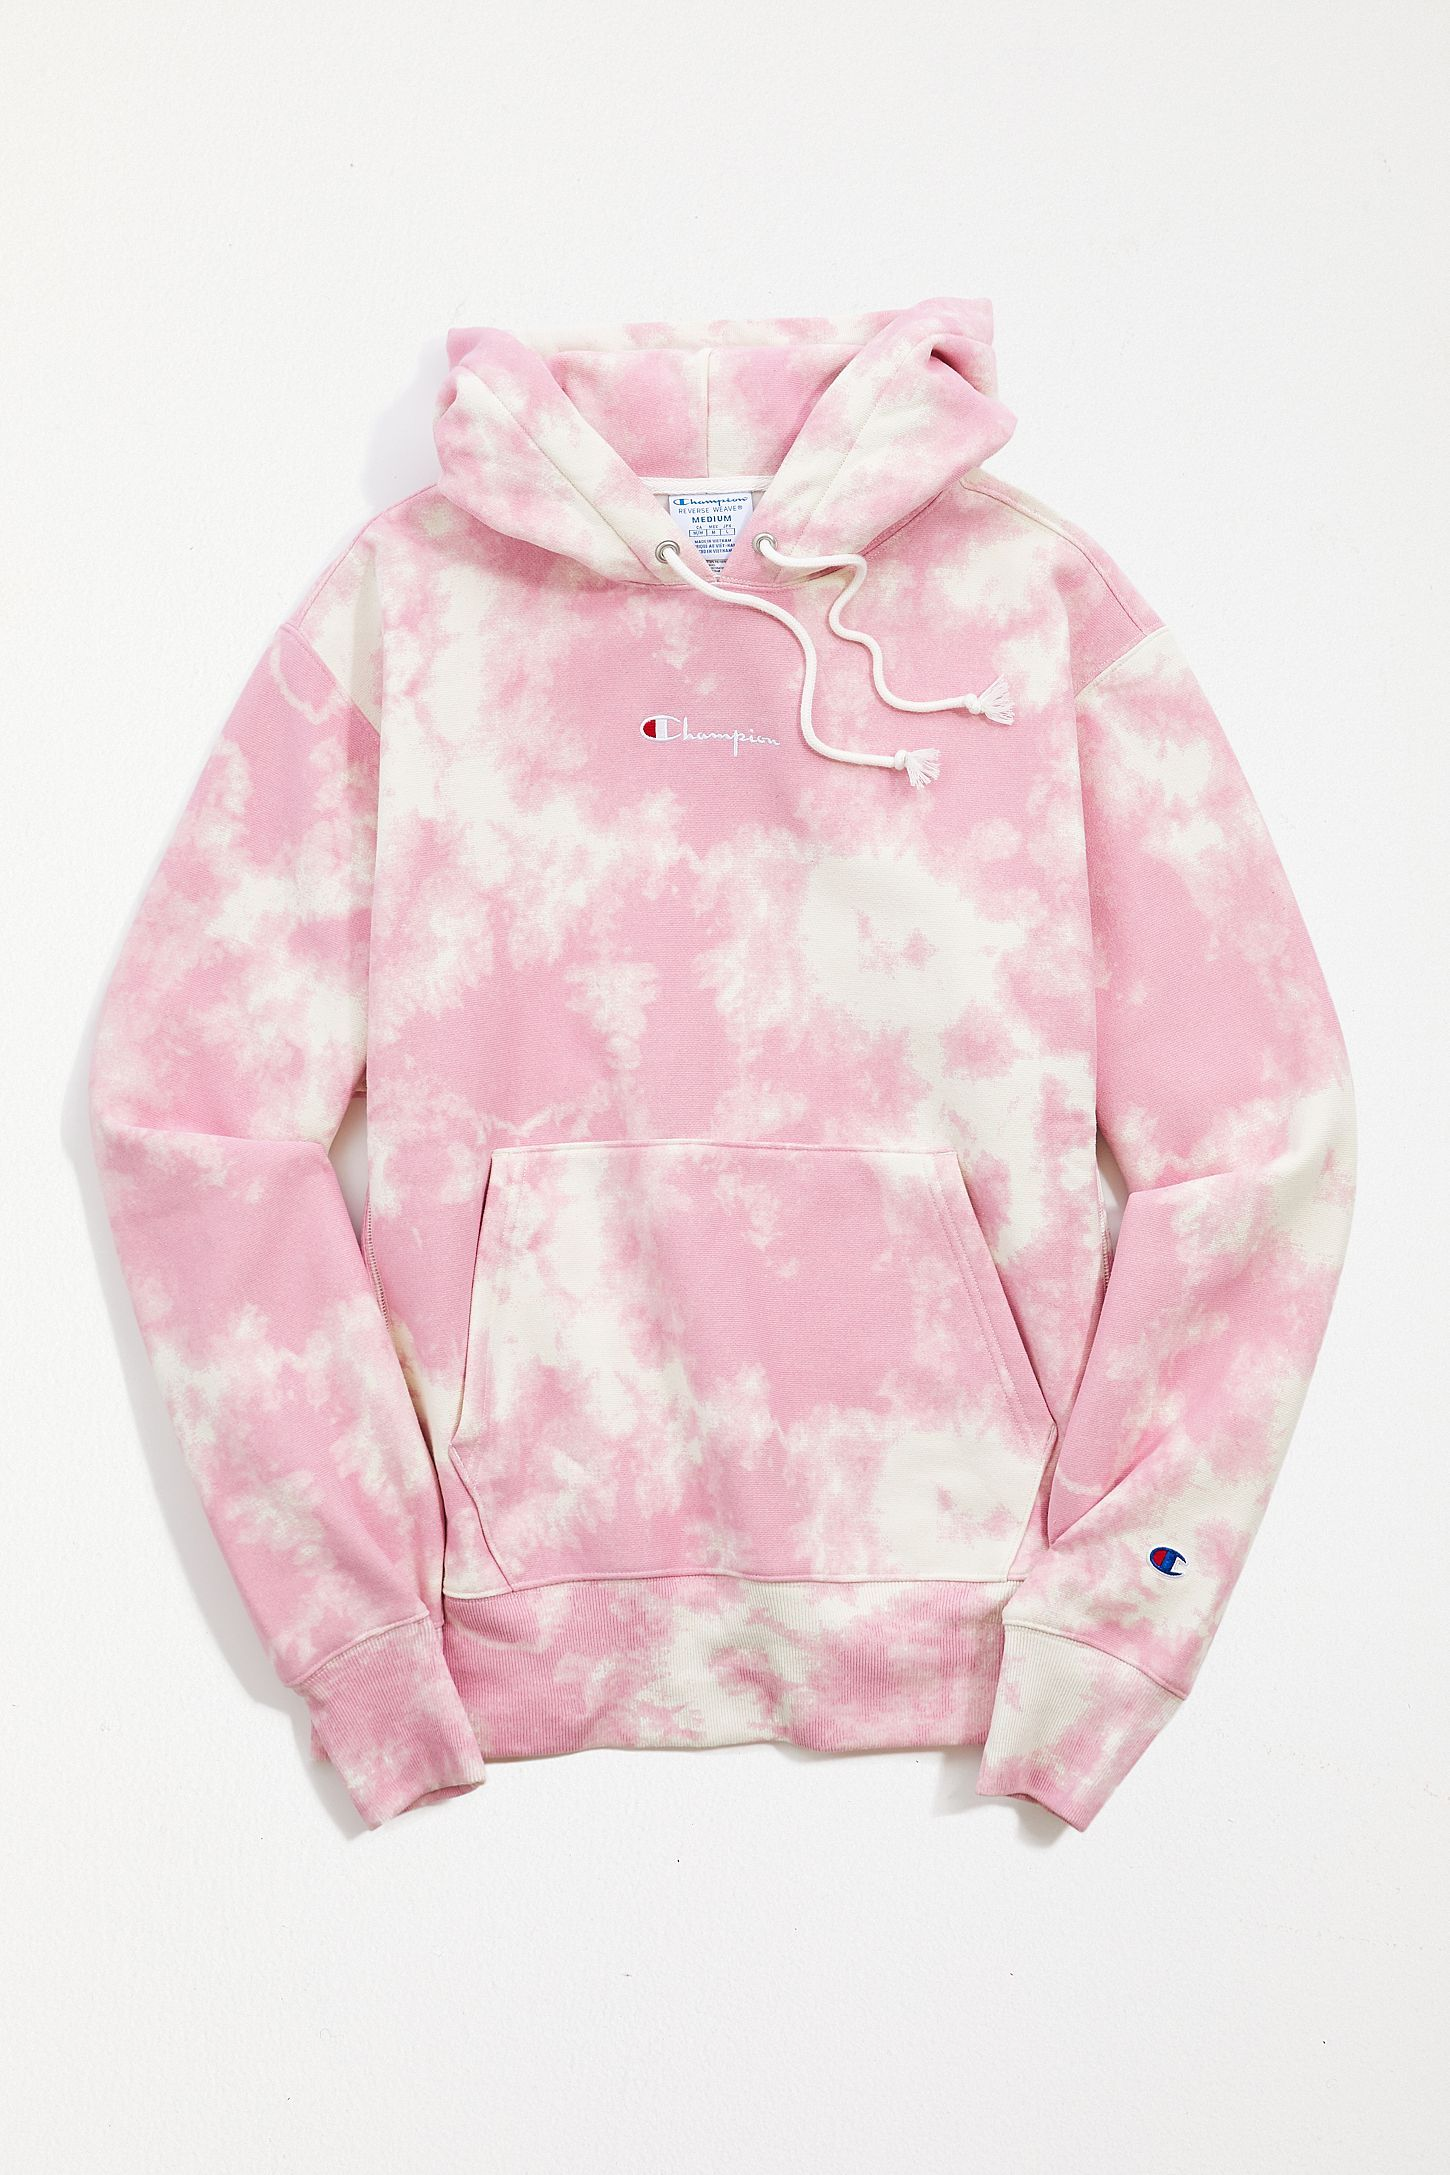 Champion UO Exclusive Tie-Dye Boyfriend Hoodie Sweatshirt